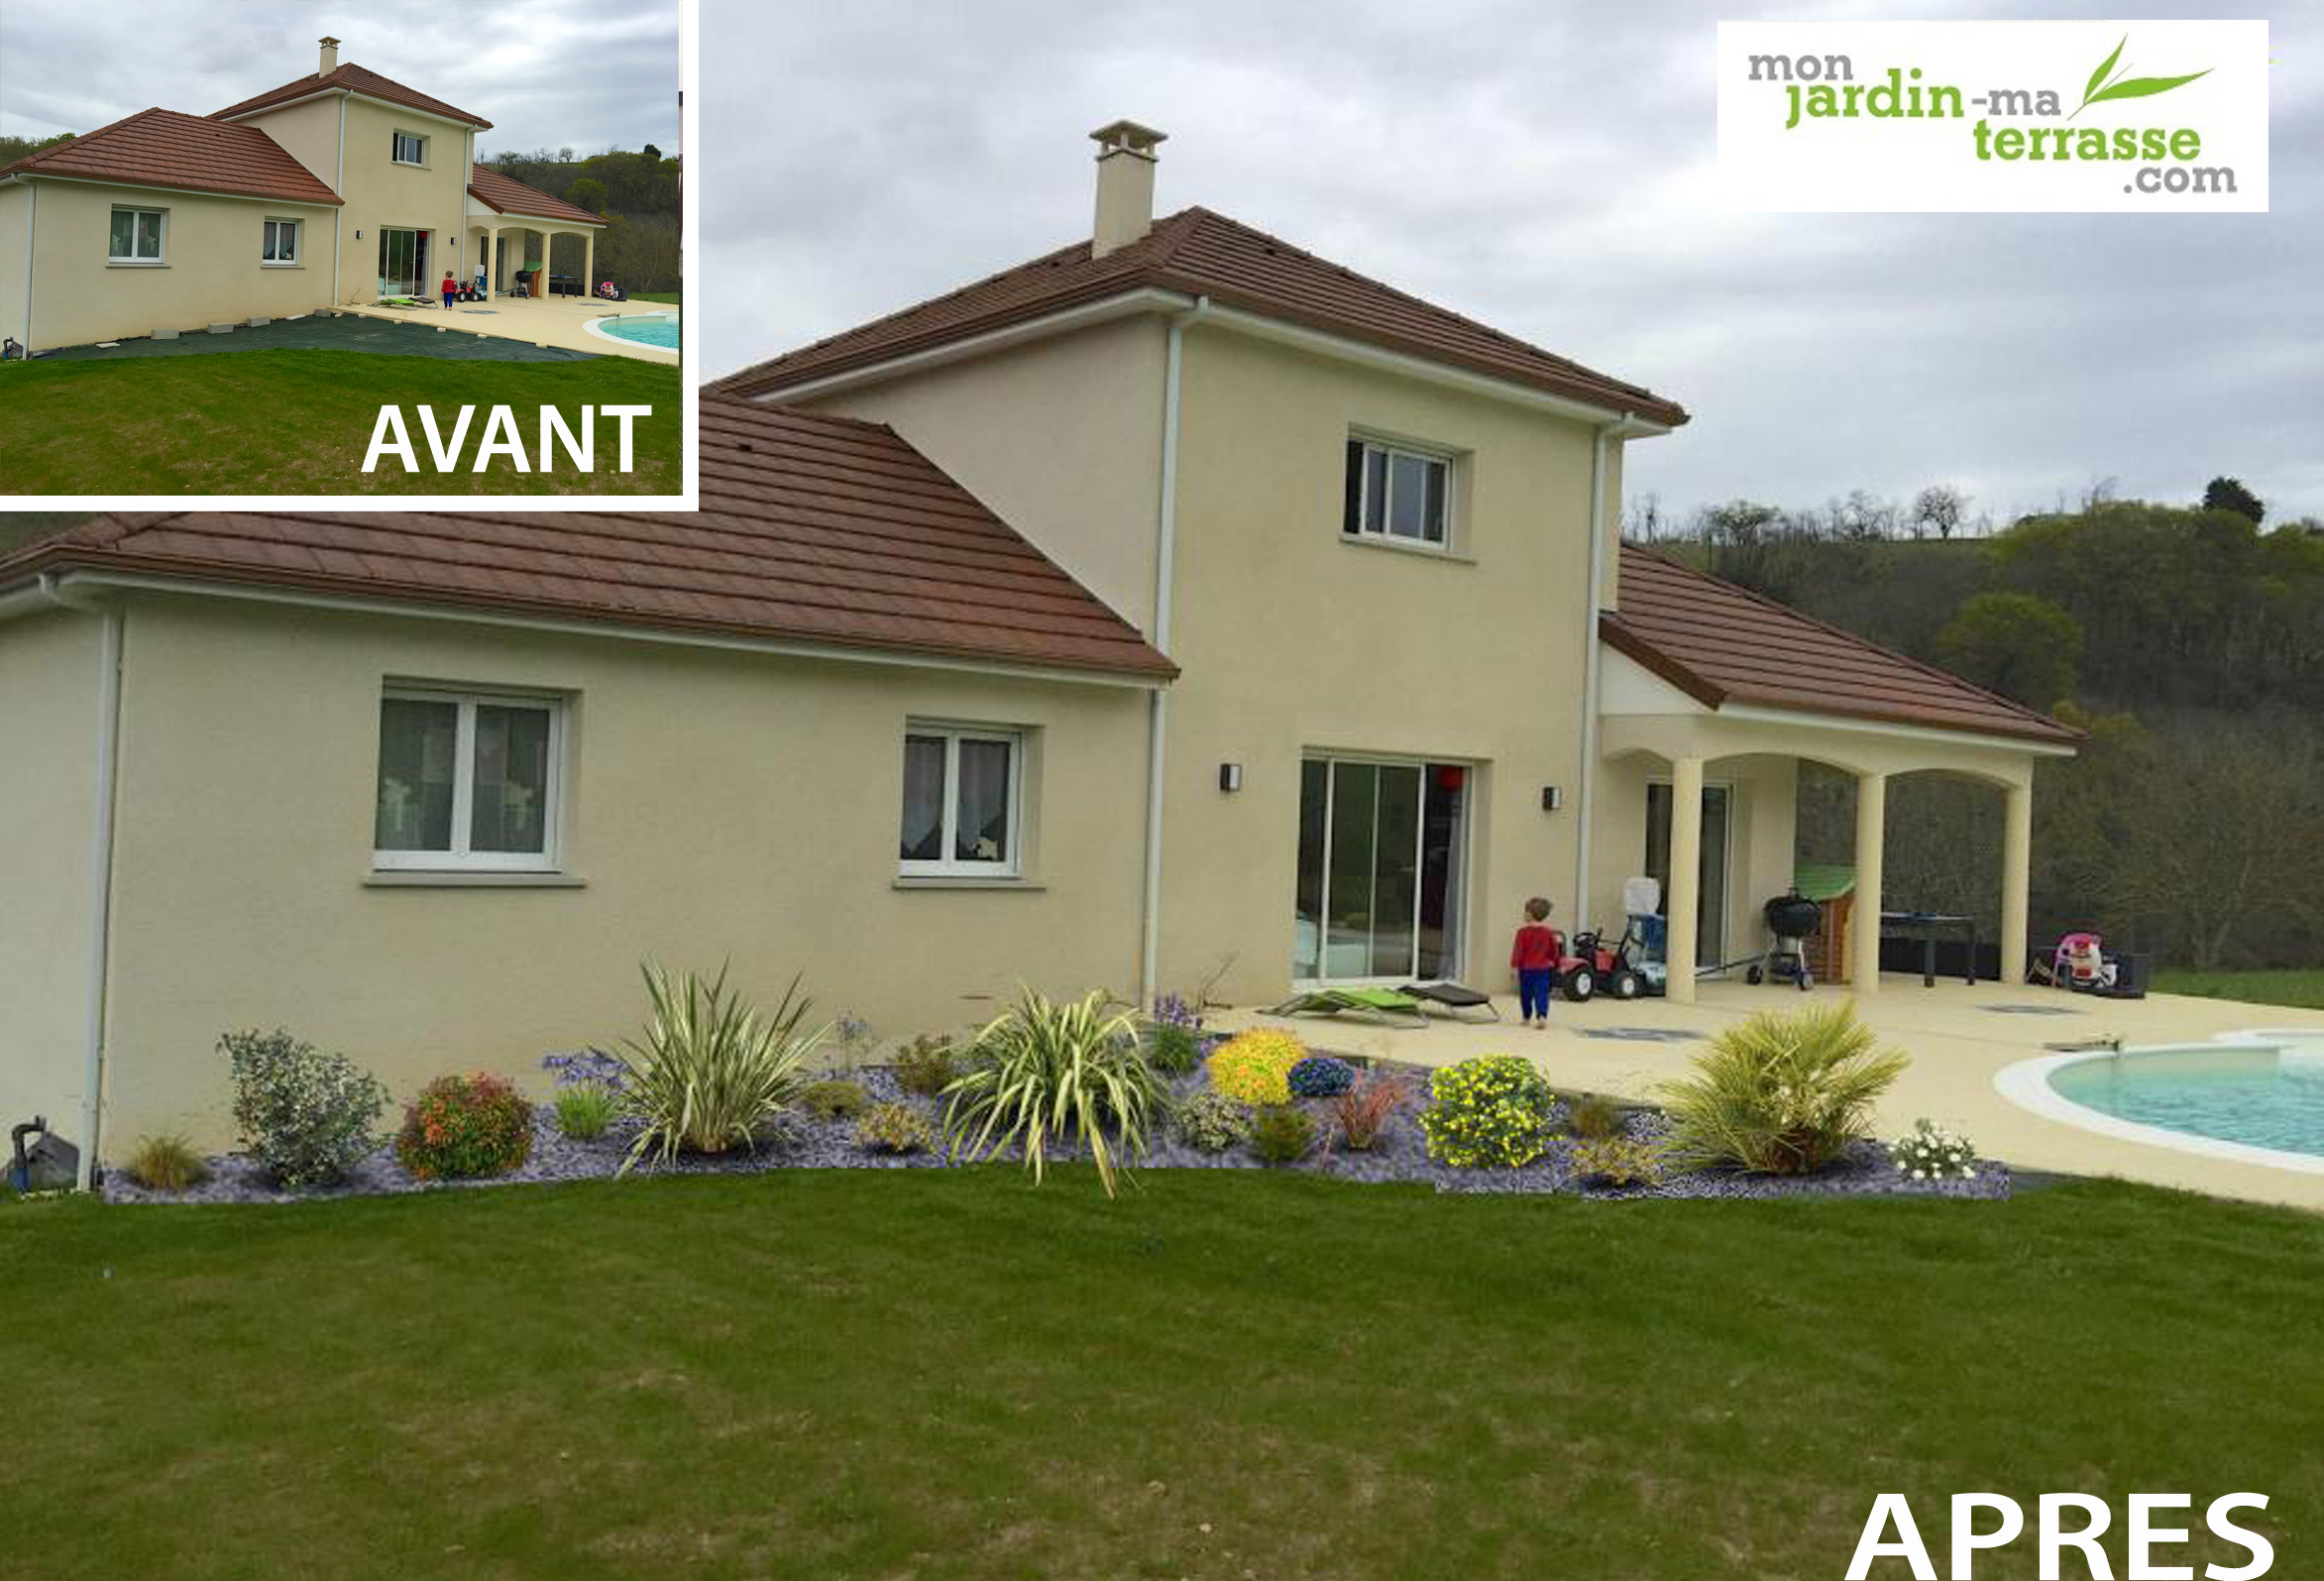 Am nagement ext rieur devant une maison monjardin for Amenagement jardin devant maison